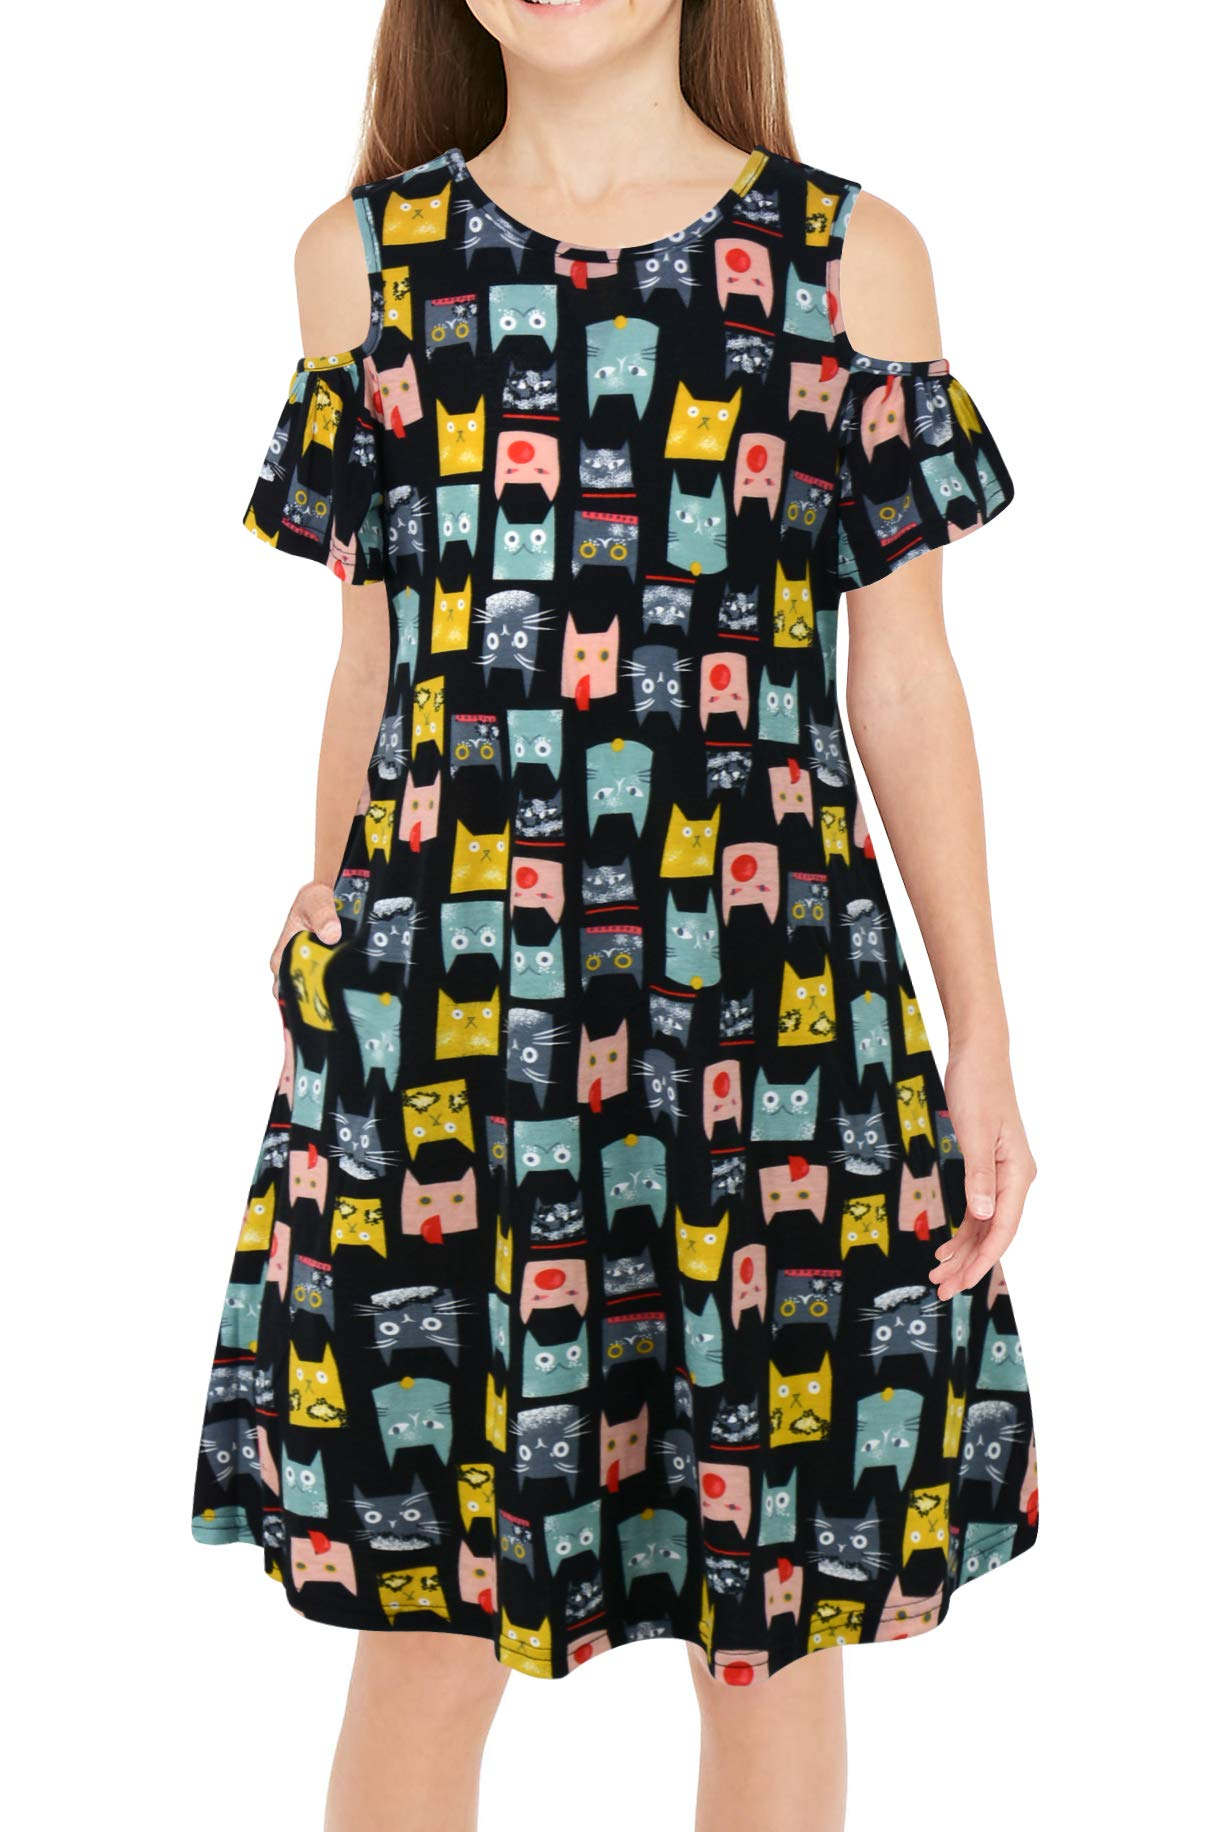 GORLYA Girl's Cold Shoulder Ruffle Sleeve Casual Loose Shift Swing Dress with Pockets 4-12 Years (GOR1004, 4-5Y, Black Cat)